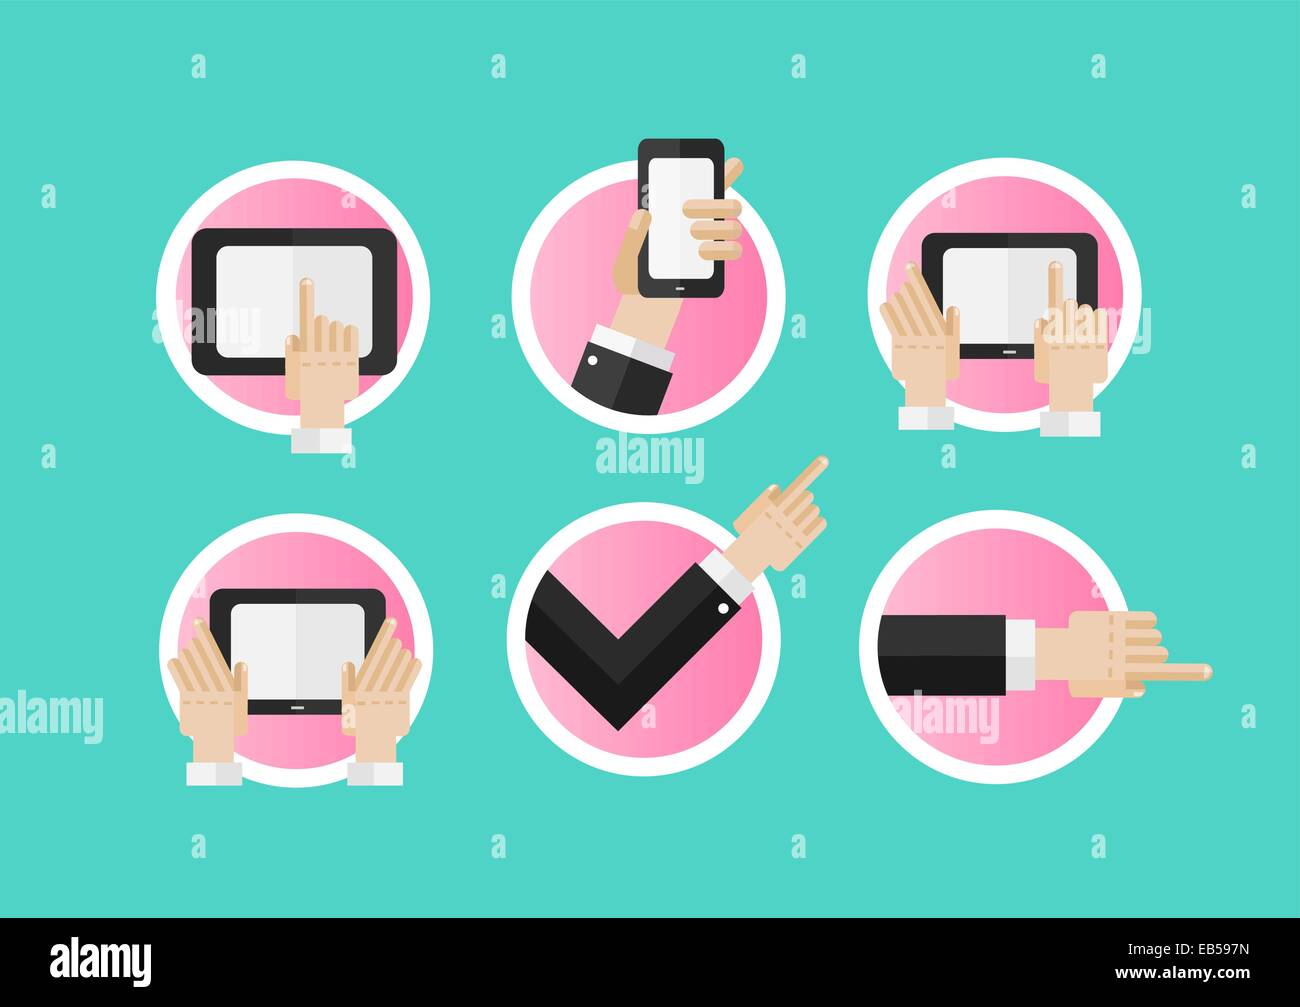 Hand pointing and using media devices - Stock Image